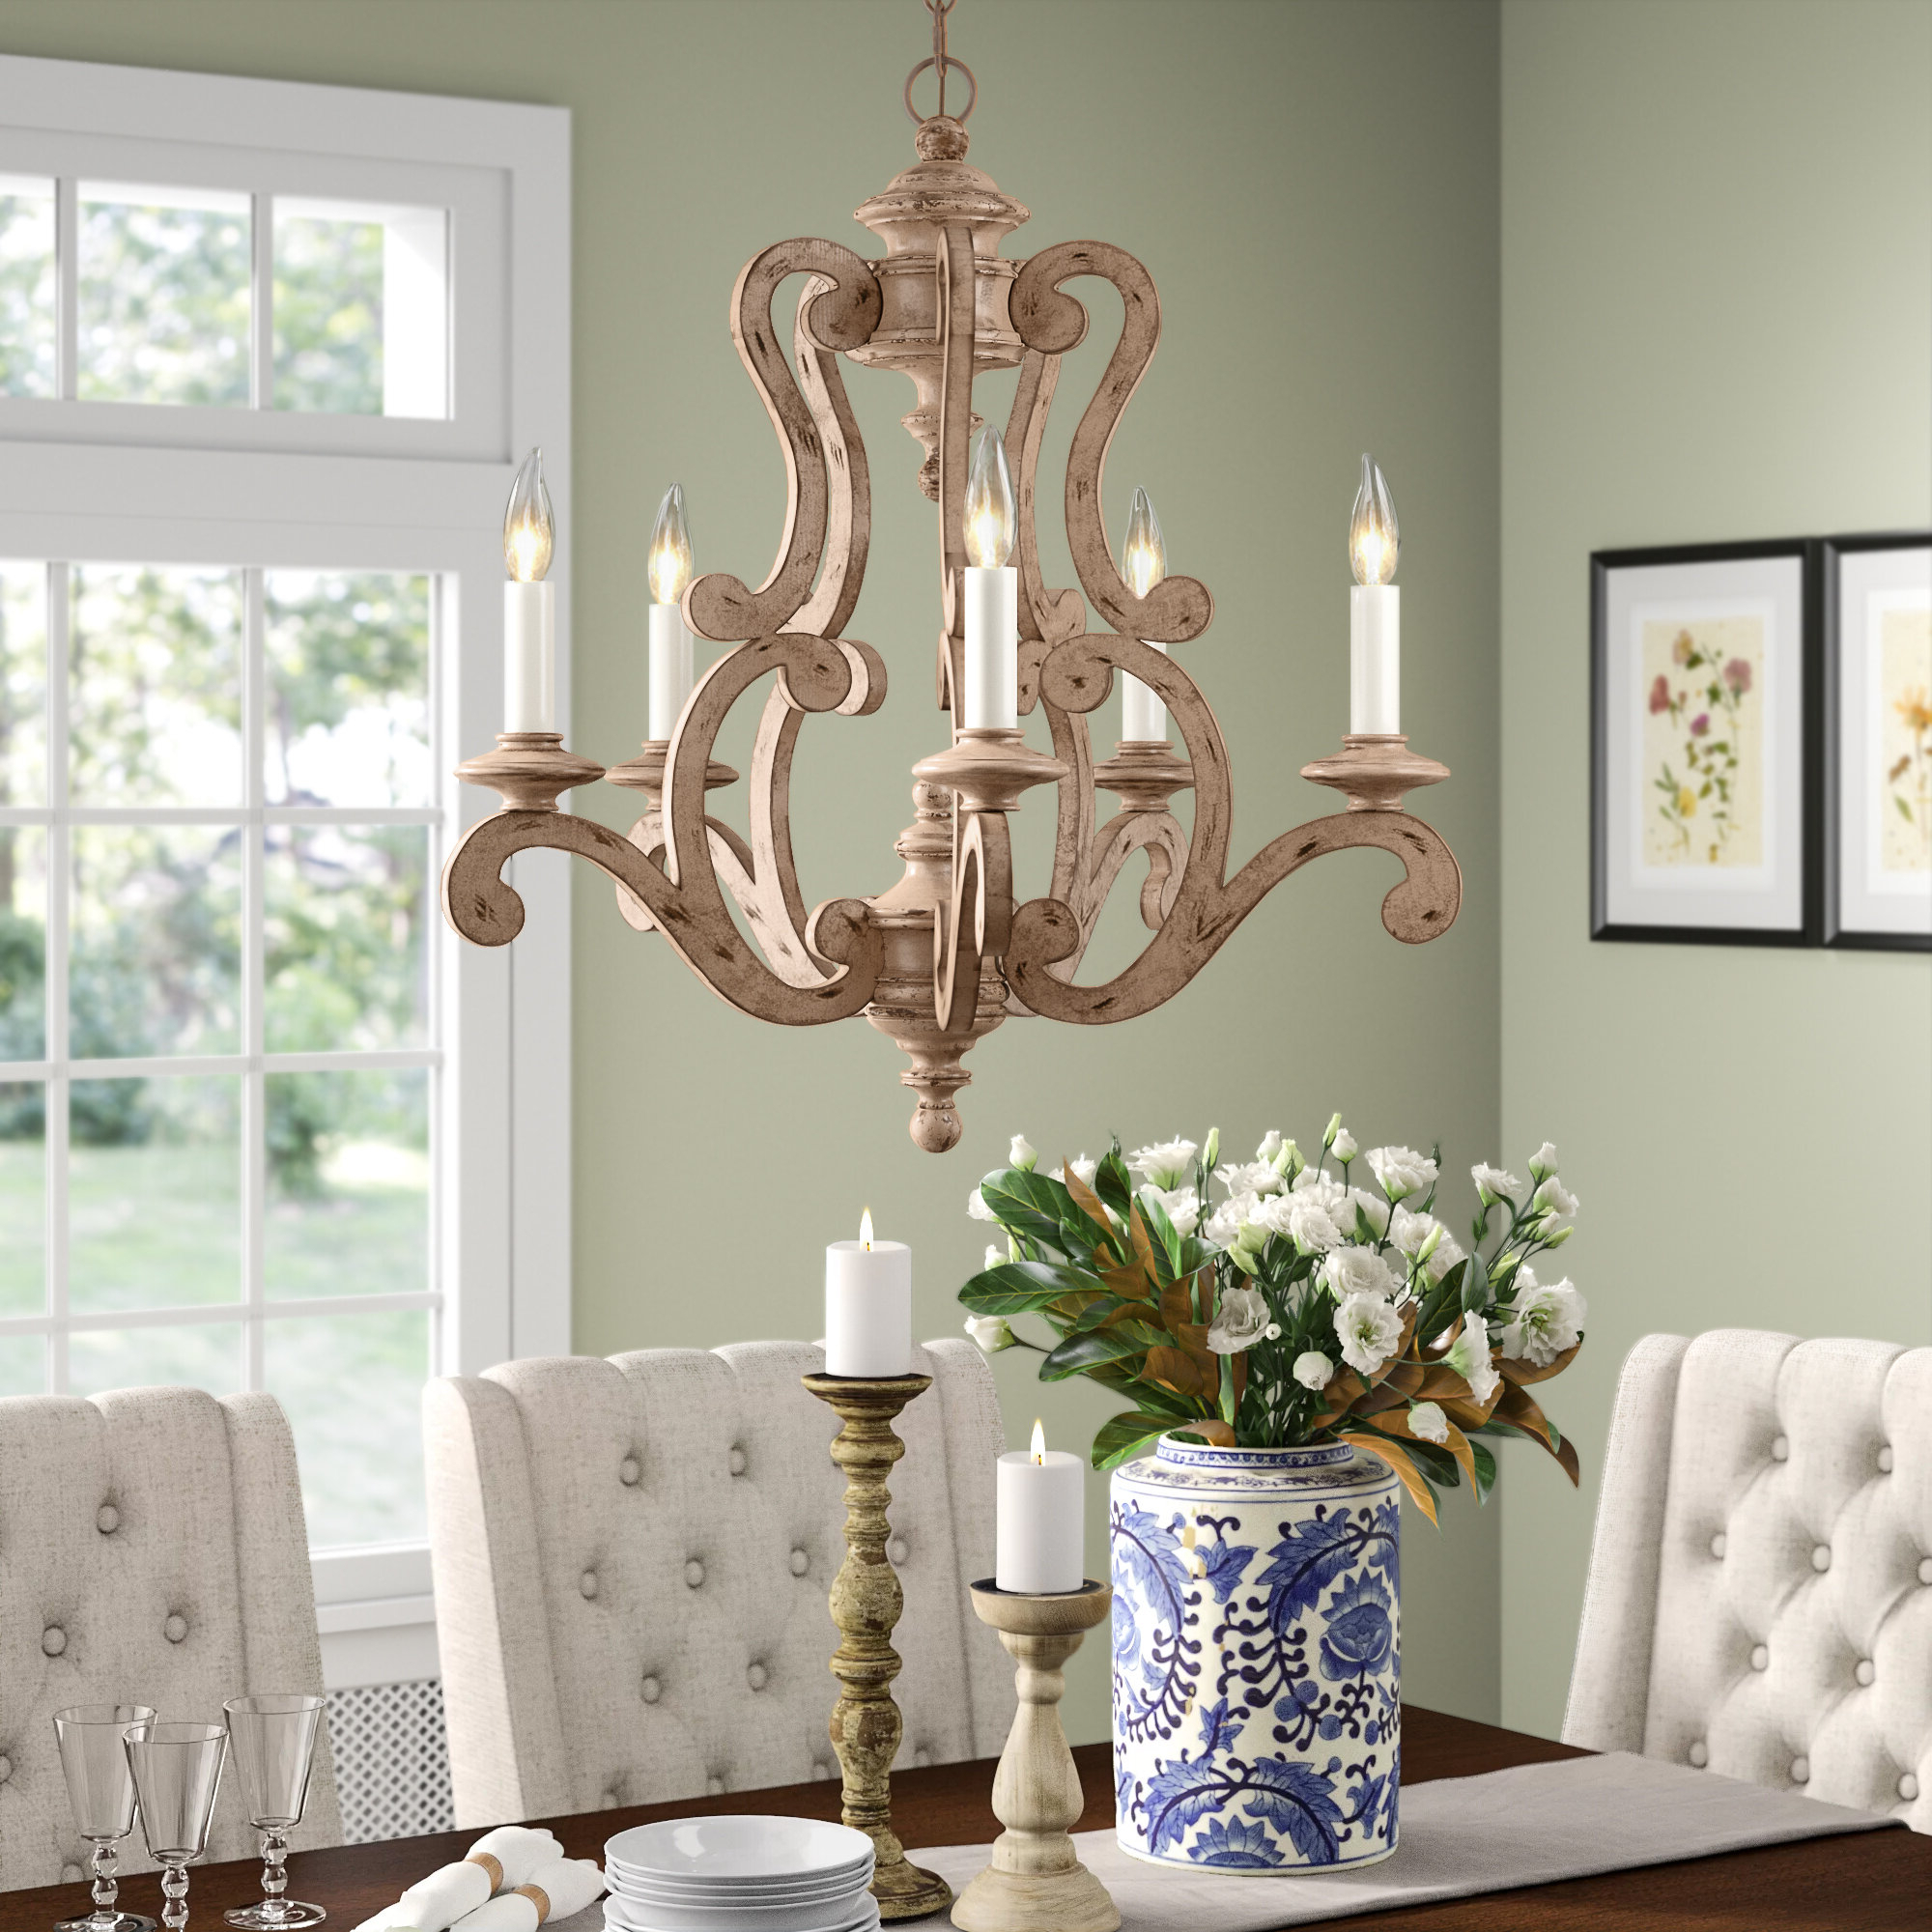 Corneau 5 Light Chandeliers With Most Up To Date Guglielmo 5 Light Candle Style Chandelier (View 11 of 20)